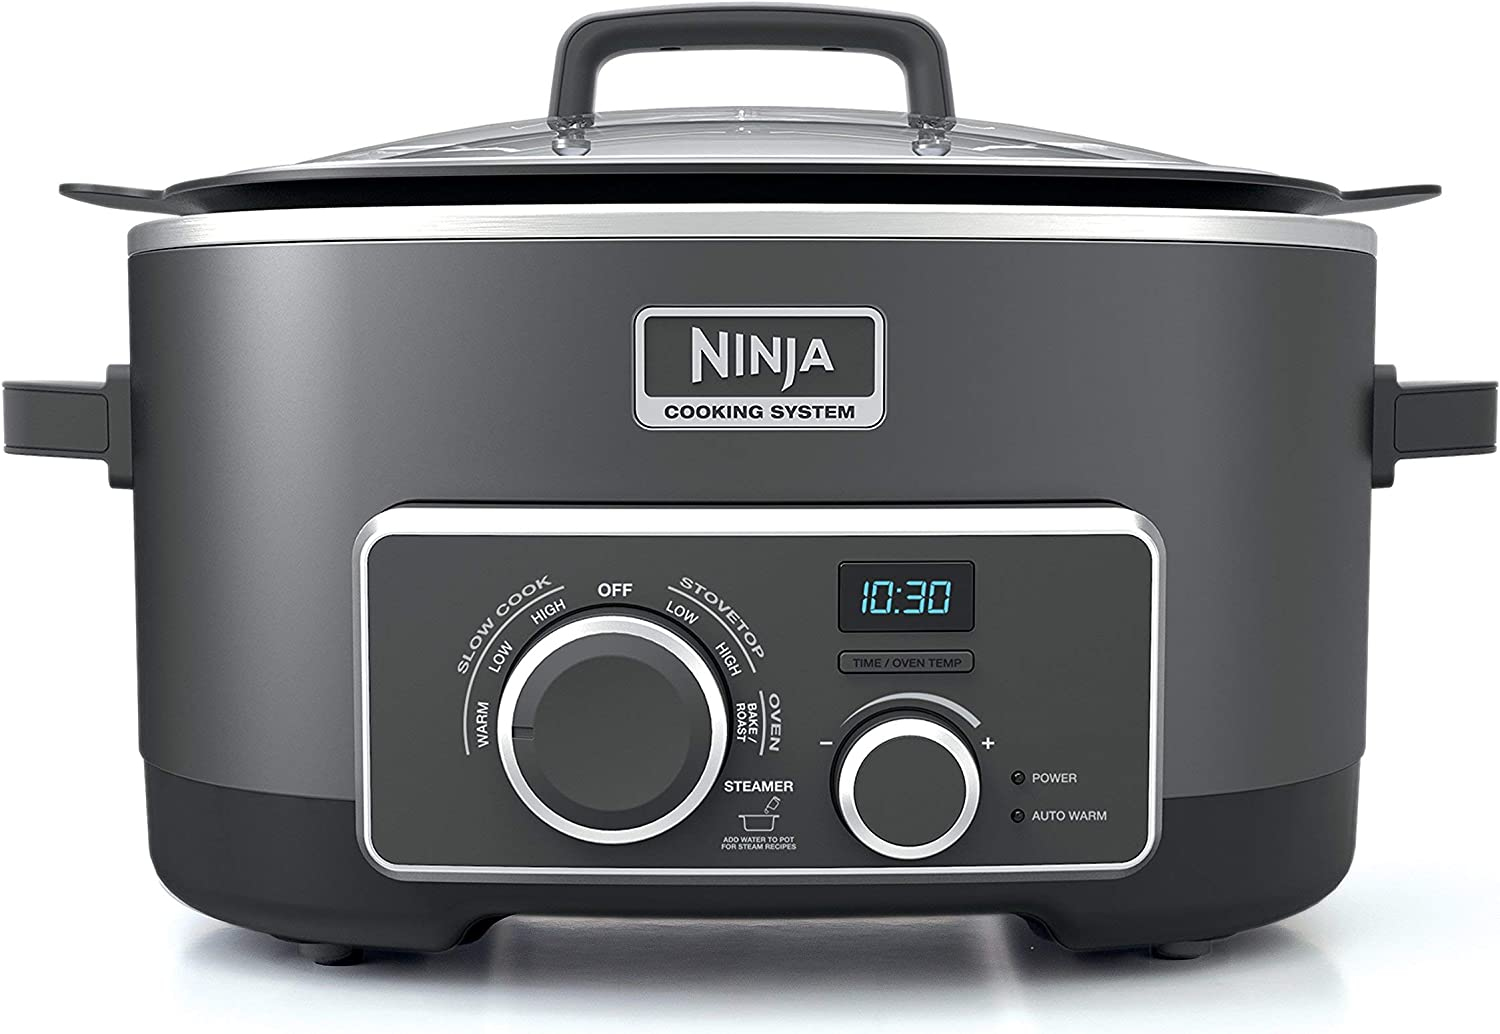 Ninja Multi-Cooker with 4-in-1 Stove Top, Oven, Steam and Slow Cooker Options, 6-Quart Nonstick Pot, and Steaming Roasting Rack MC950Z , Black Renewed